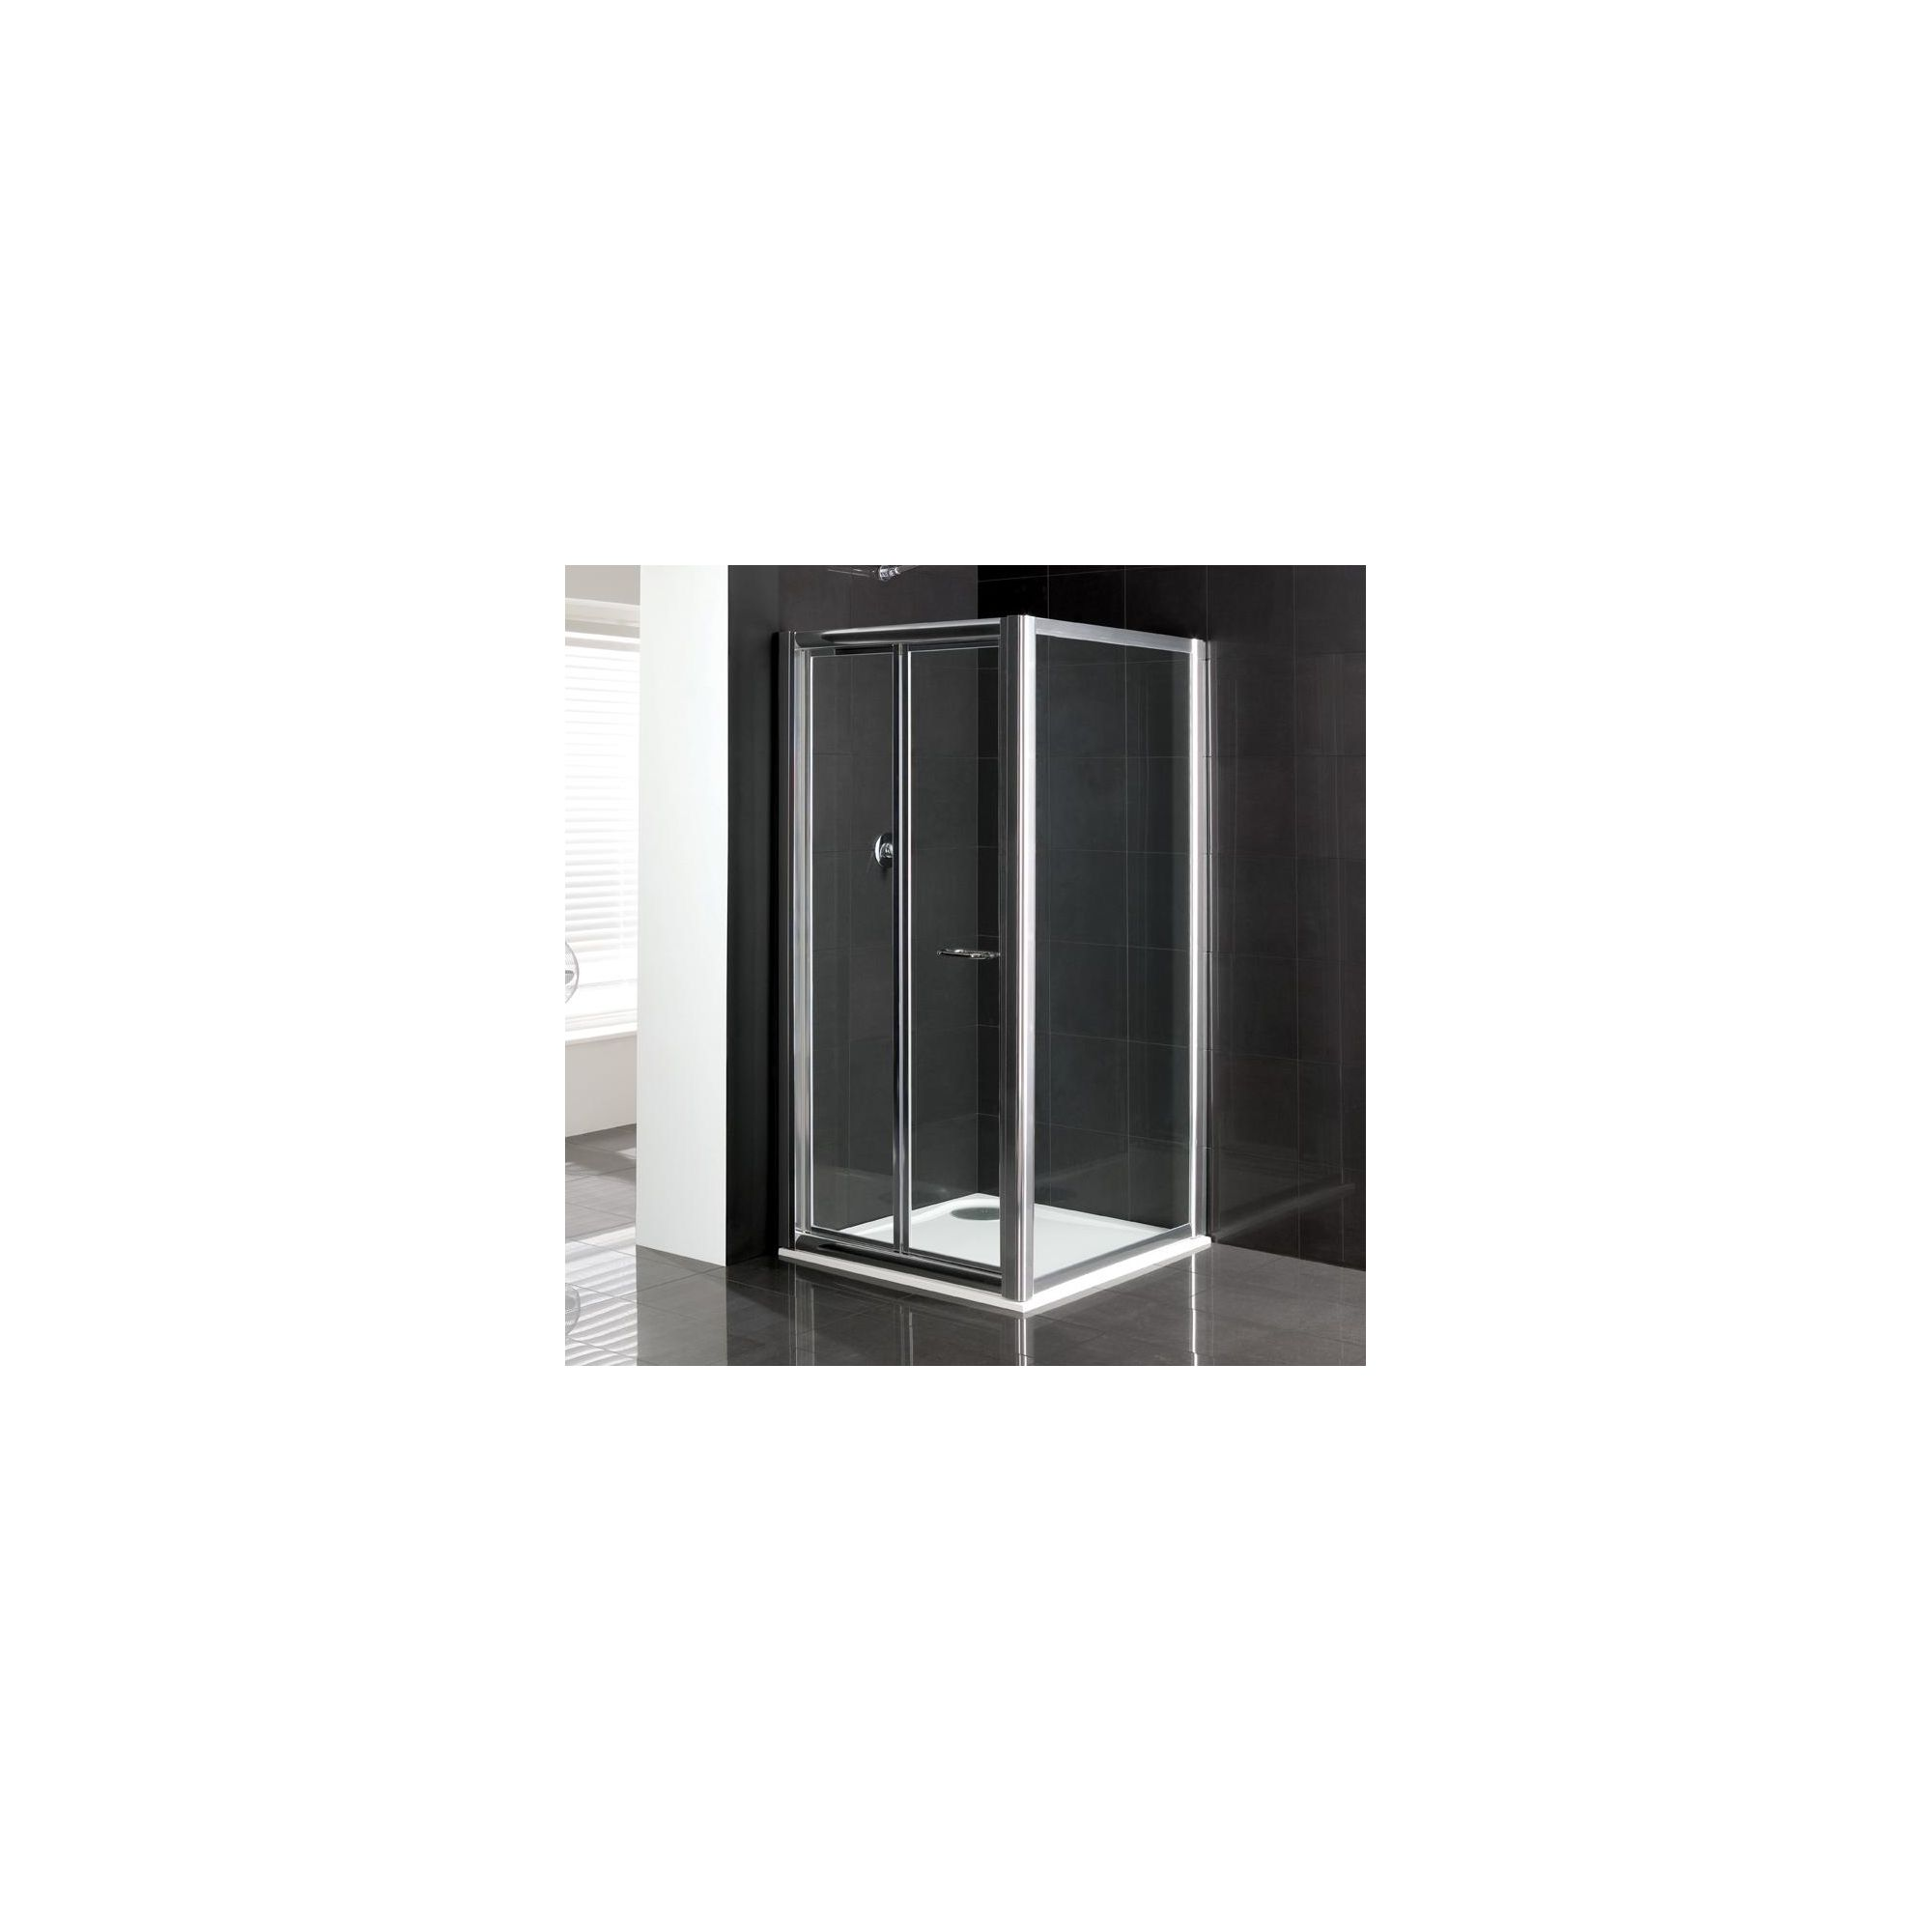 Duchy Elite Silver Bi-Fold Door Shower Enclosure, 900mm x 700mm, Standard Tray, 6mm Glass at Tesco Direct